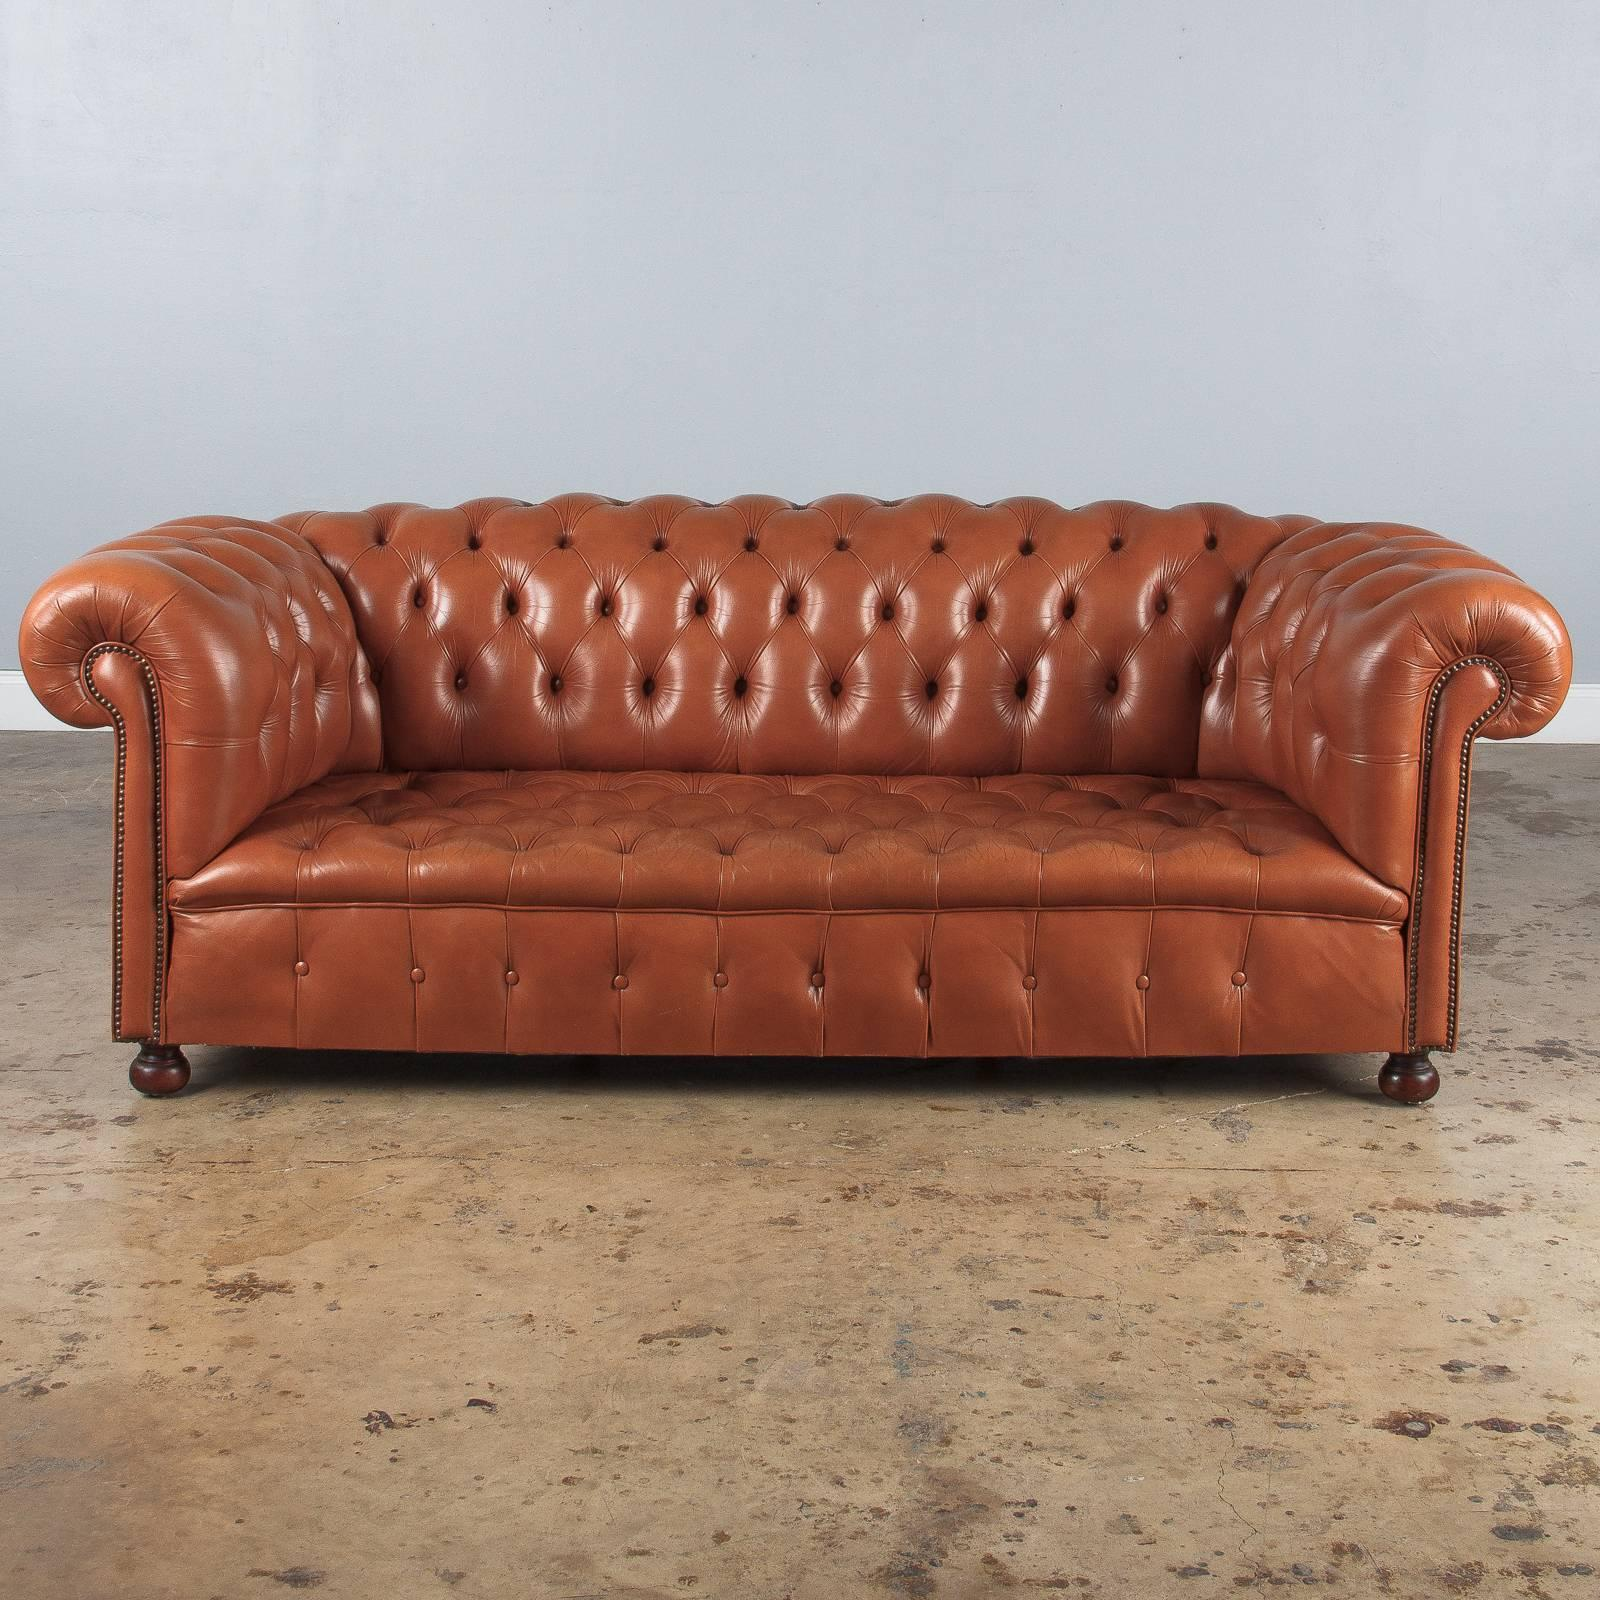 French Vintage English Leather Chesterfield Sofa, 1960s For Sale